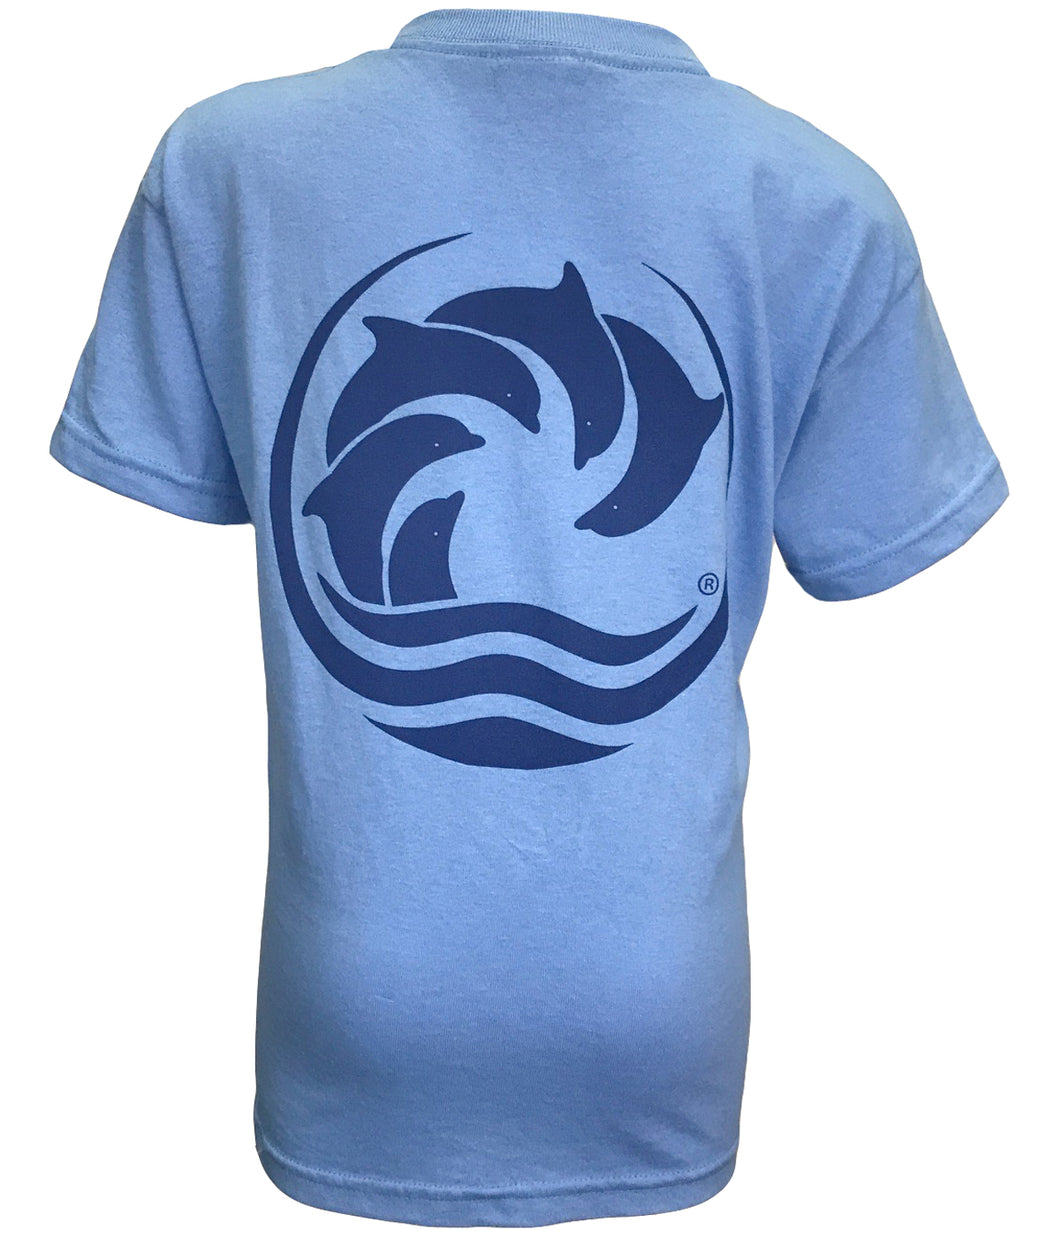 SEAWORLD YOUTH S/S